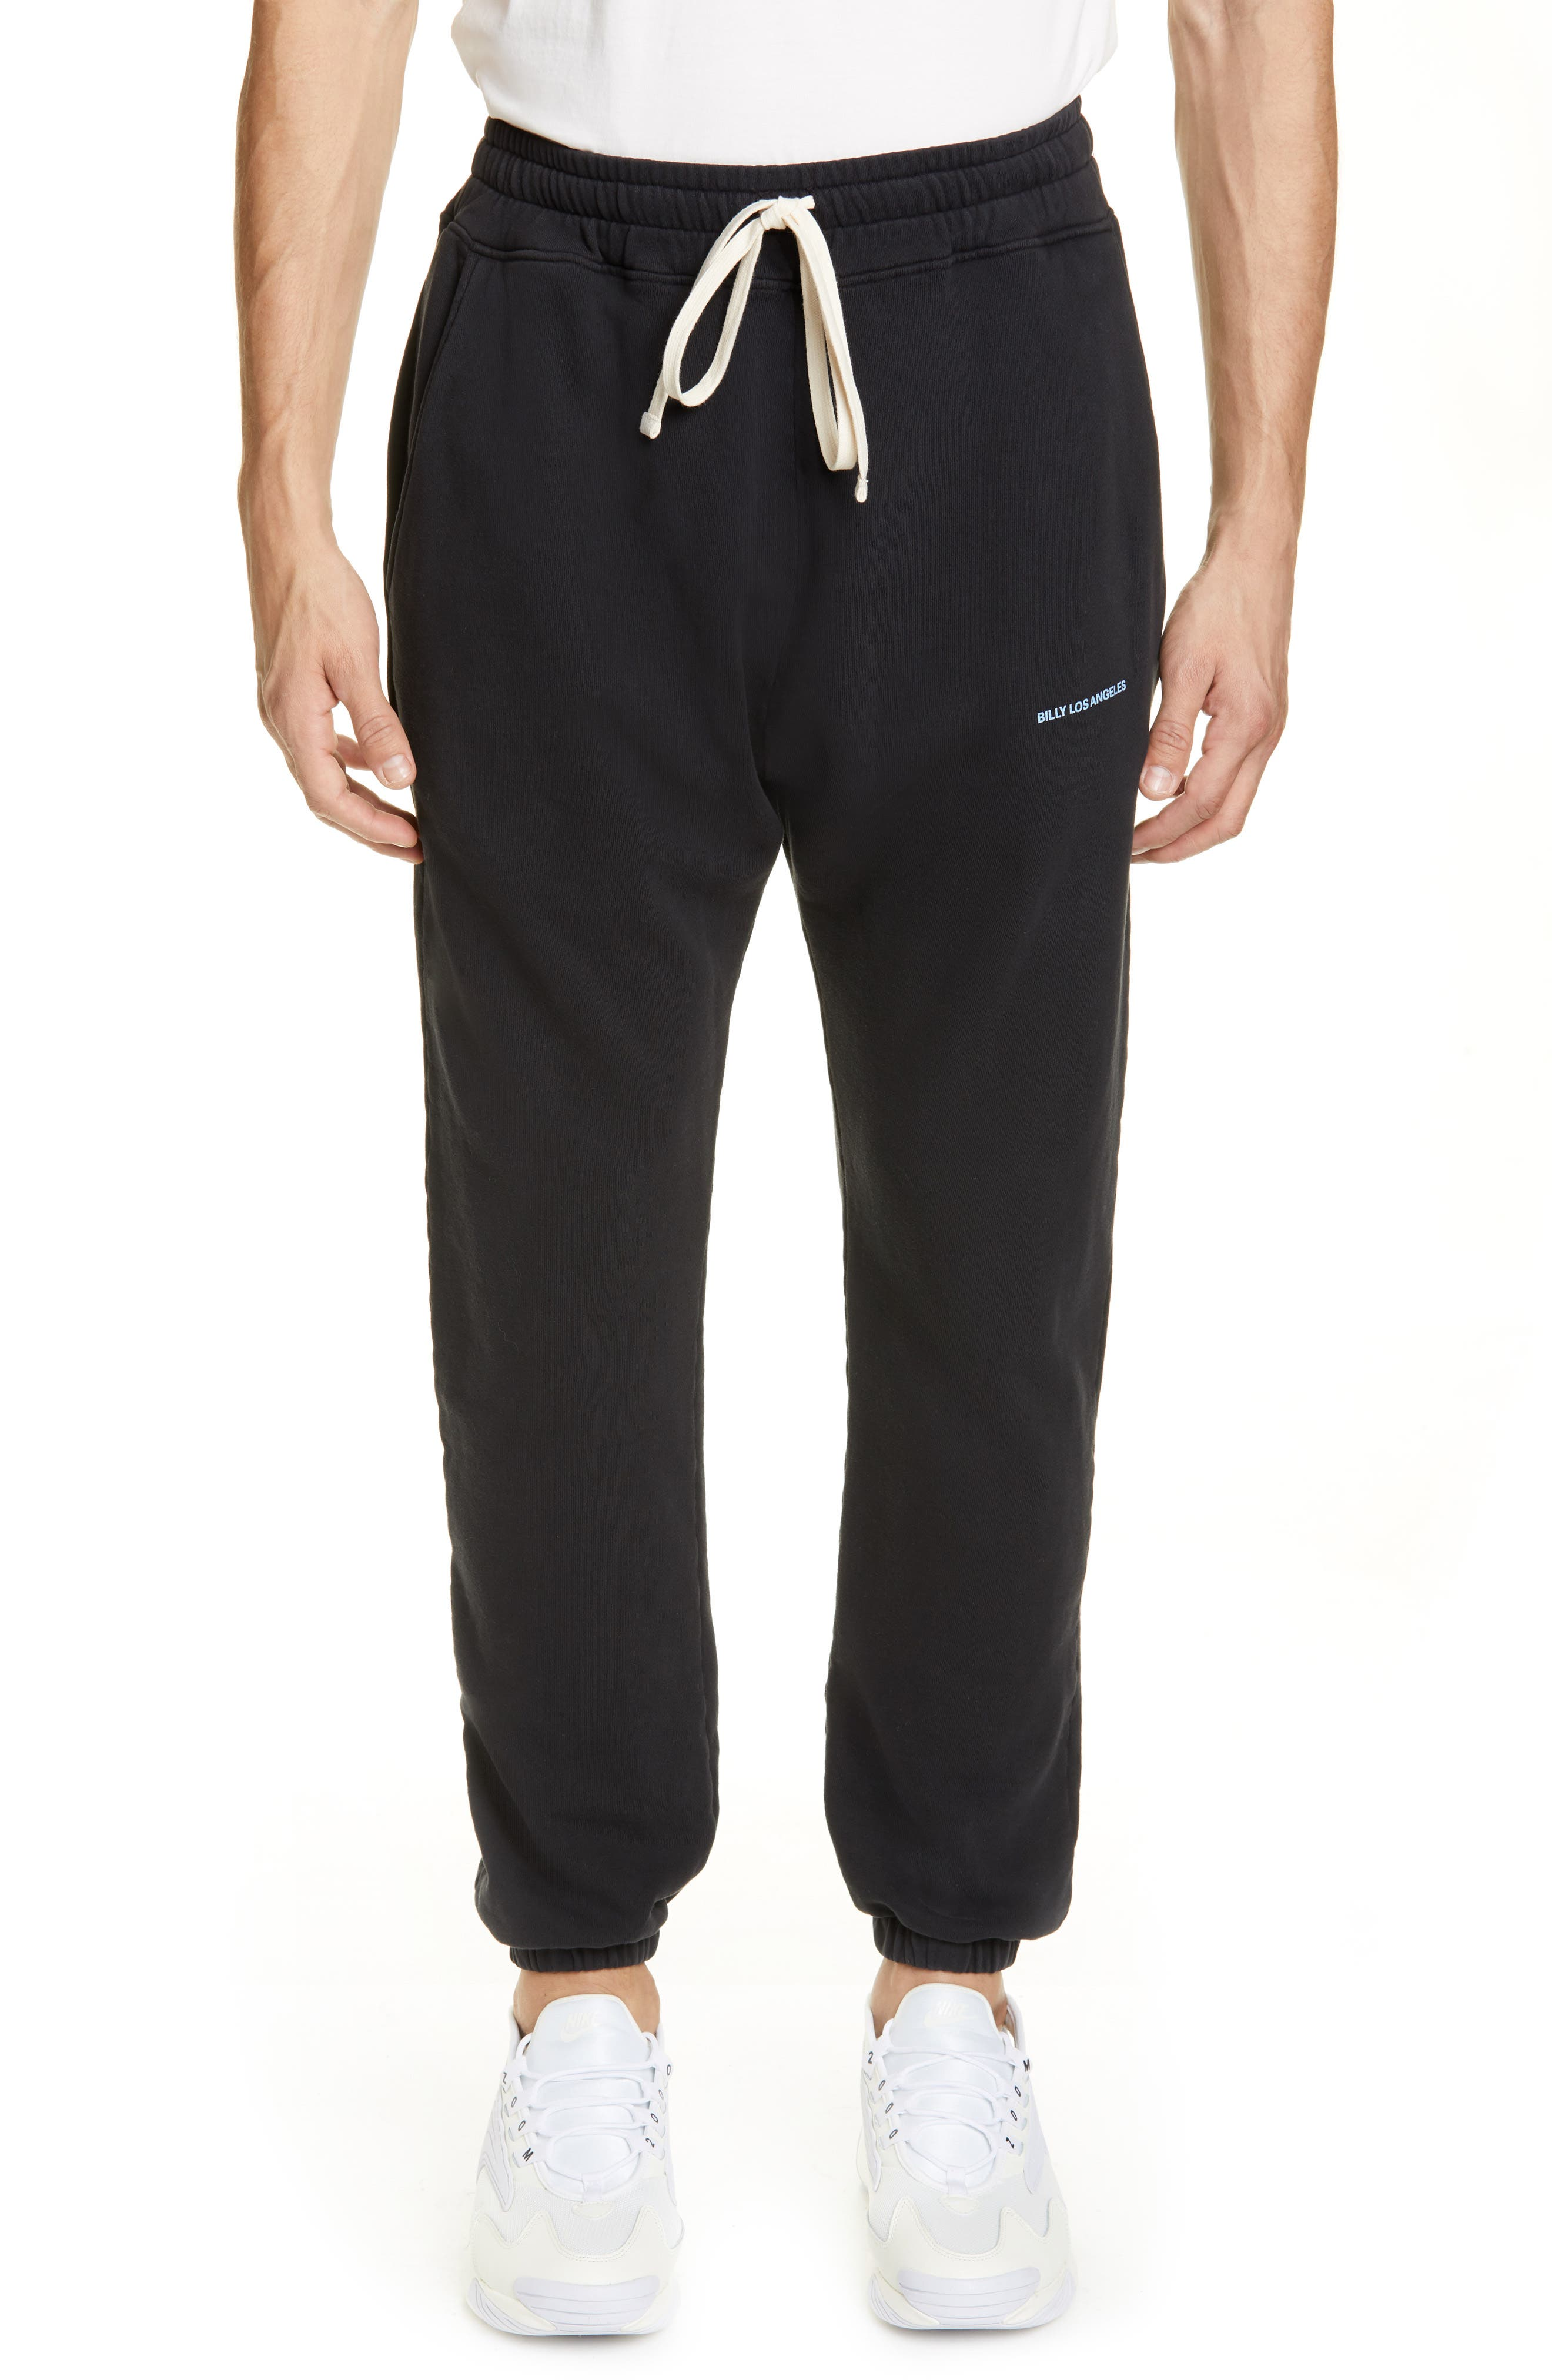 Billy Los Angeles Graphic Clout Sweatpants, Black